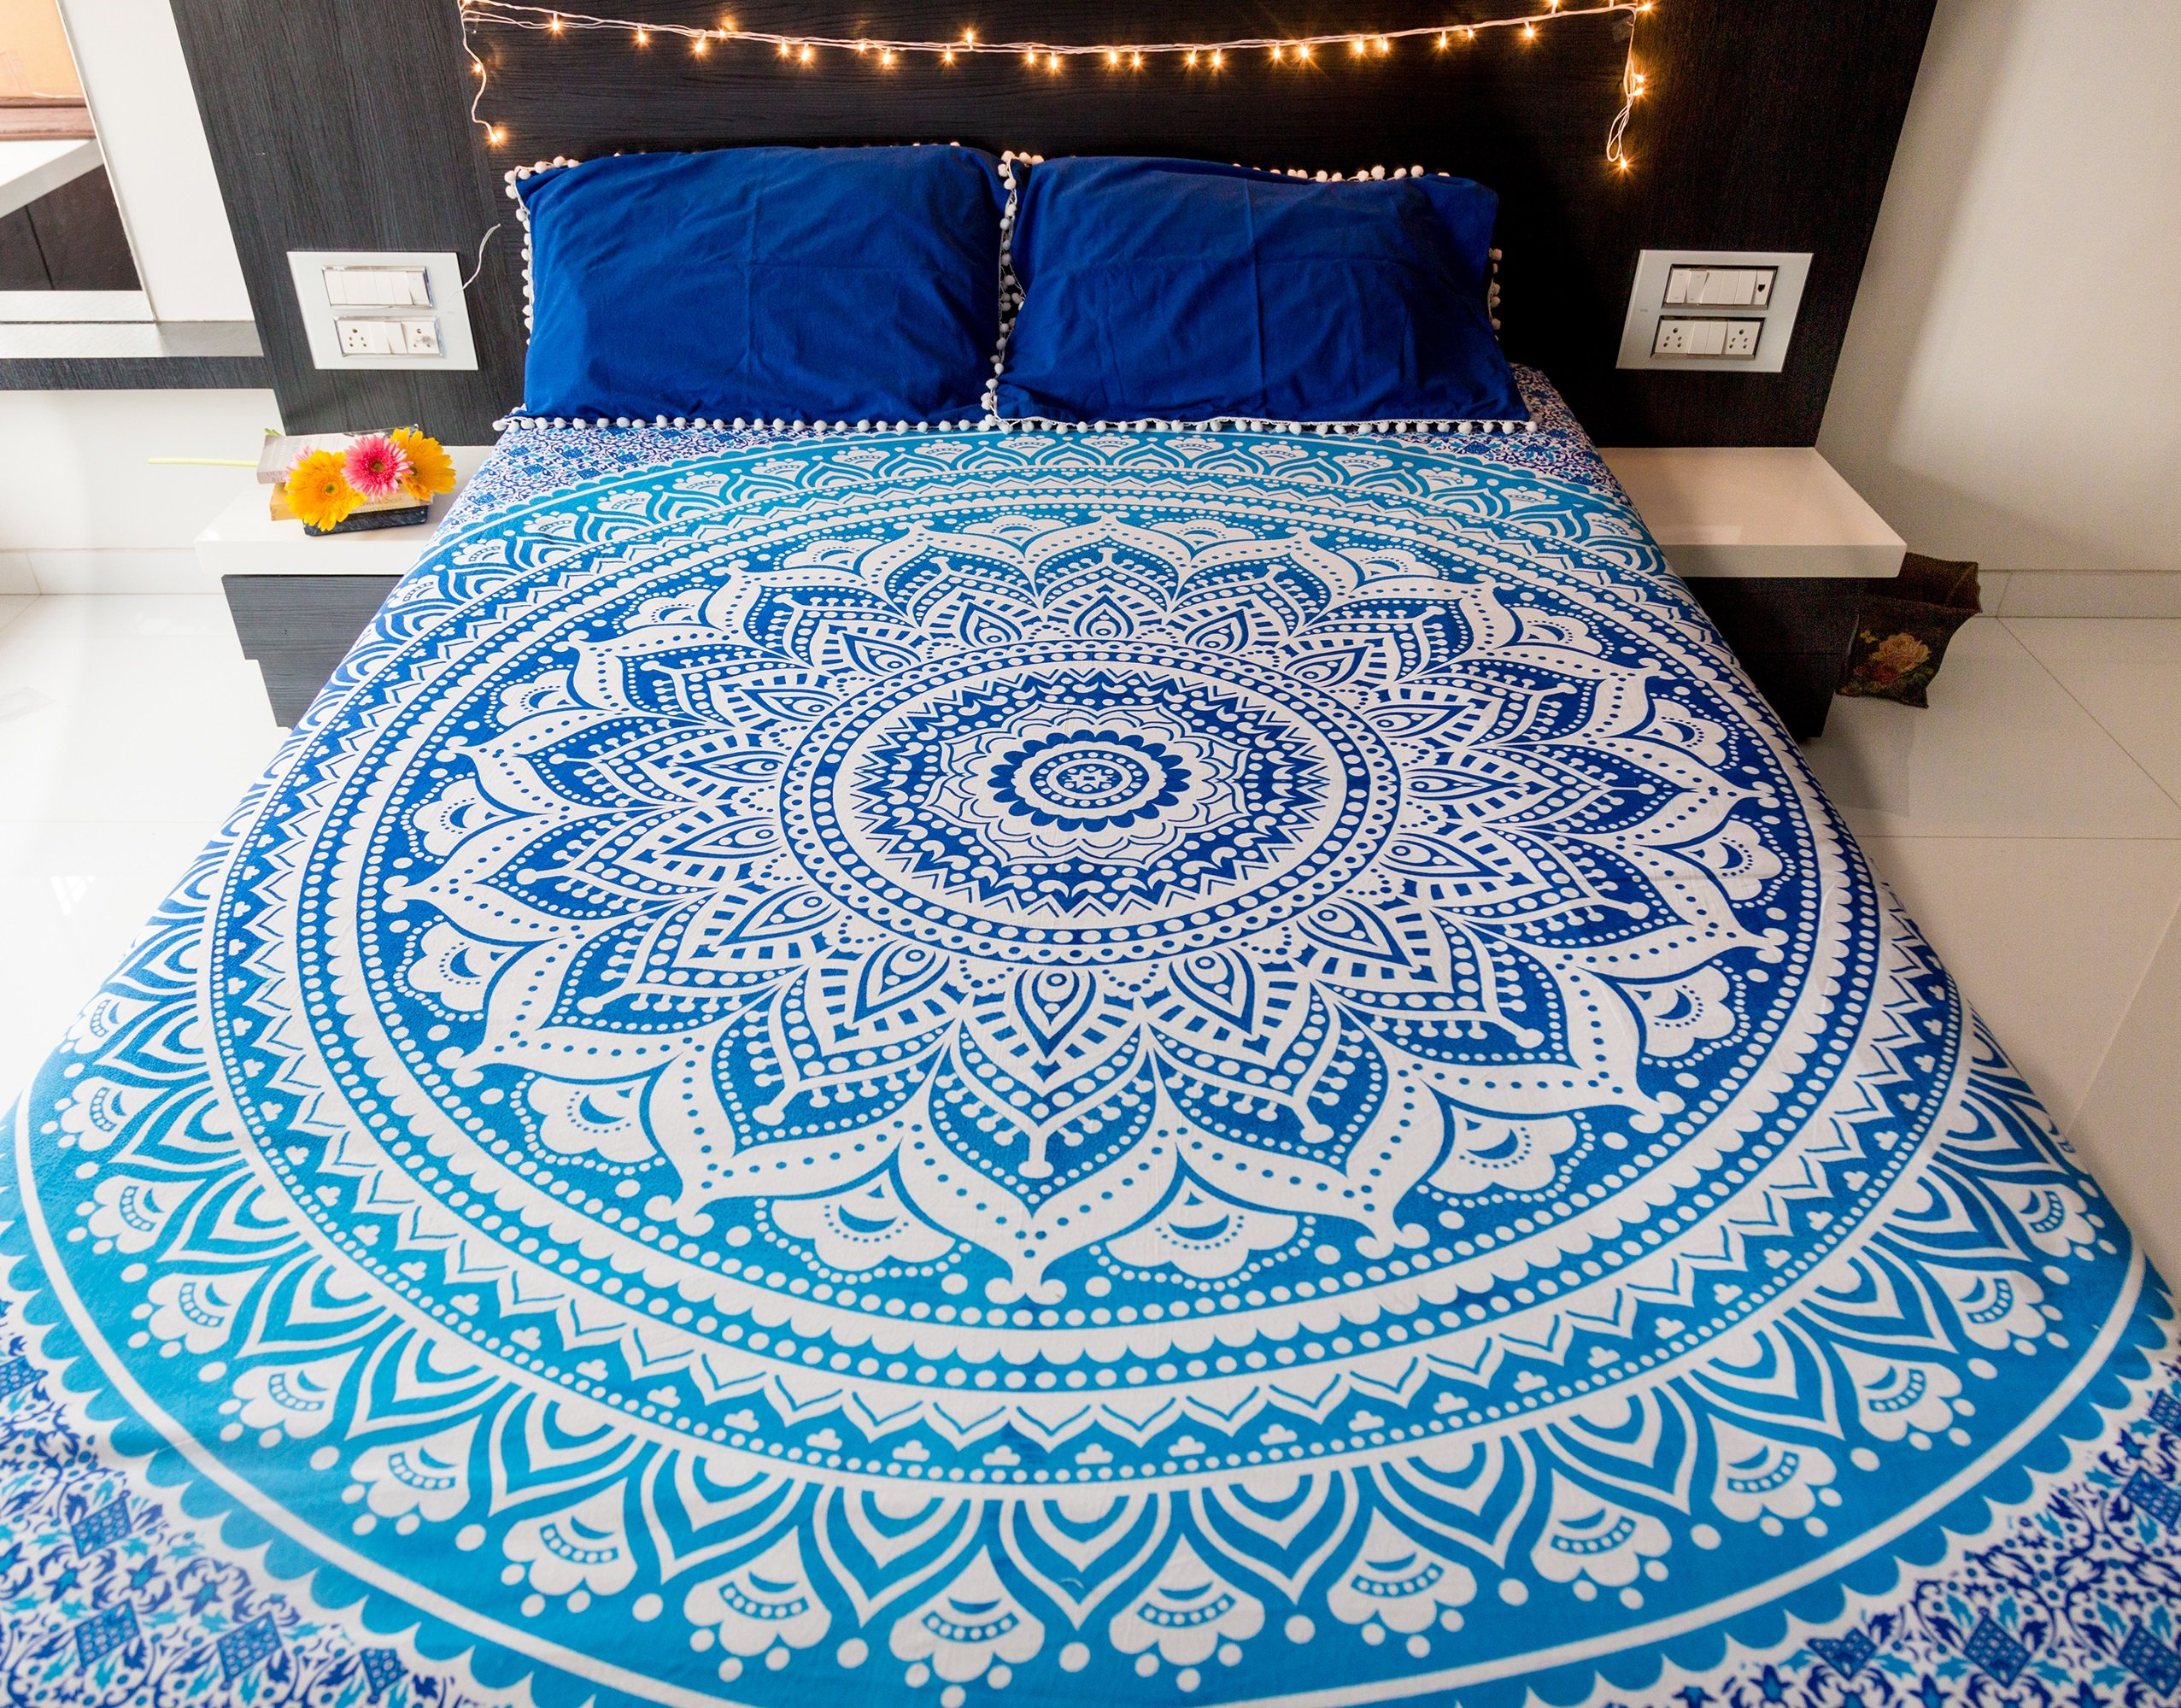 Mandala Tapestry Bedding with Pillow Covers, Indian Bohemian Hippie Tapestry Wall Hanging, Hippy Blanket or Beach Throw, Ombre Mandala Bedspread for Bedroom, Queen Size Majestic Blue Boho Decor